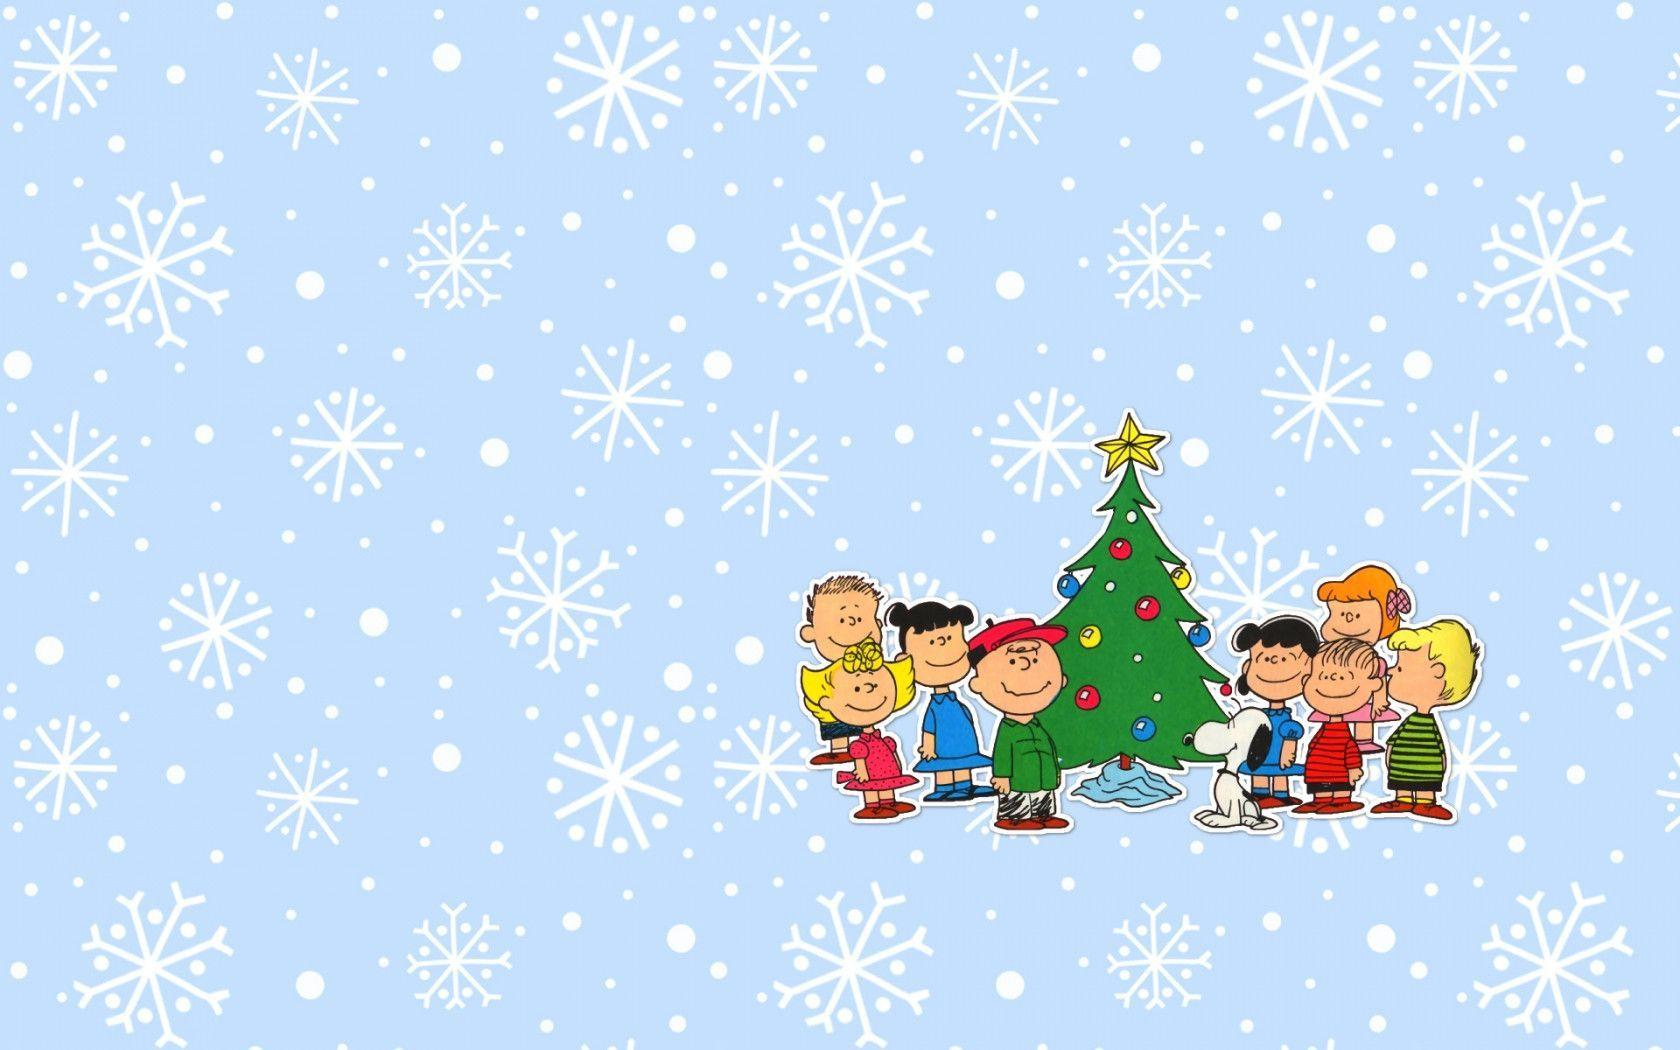 Christmas Wallpaper Background.Download Snoopy Christmas Wallpaper Free Hd Backgrounds